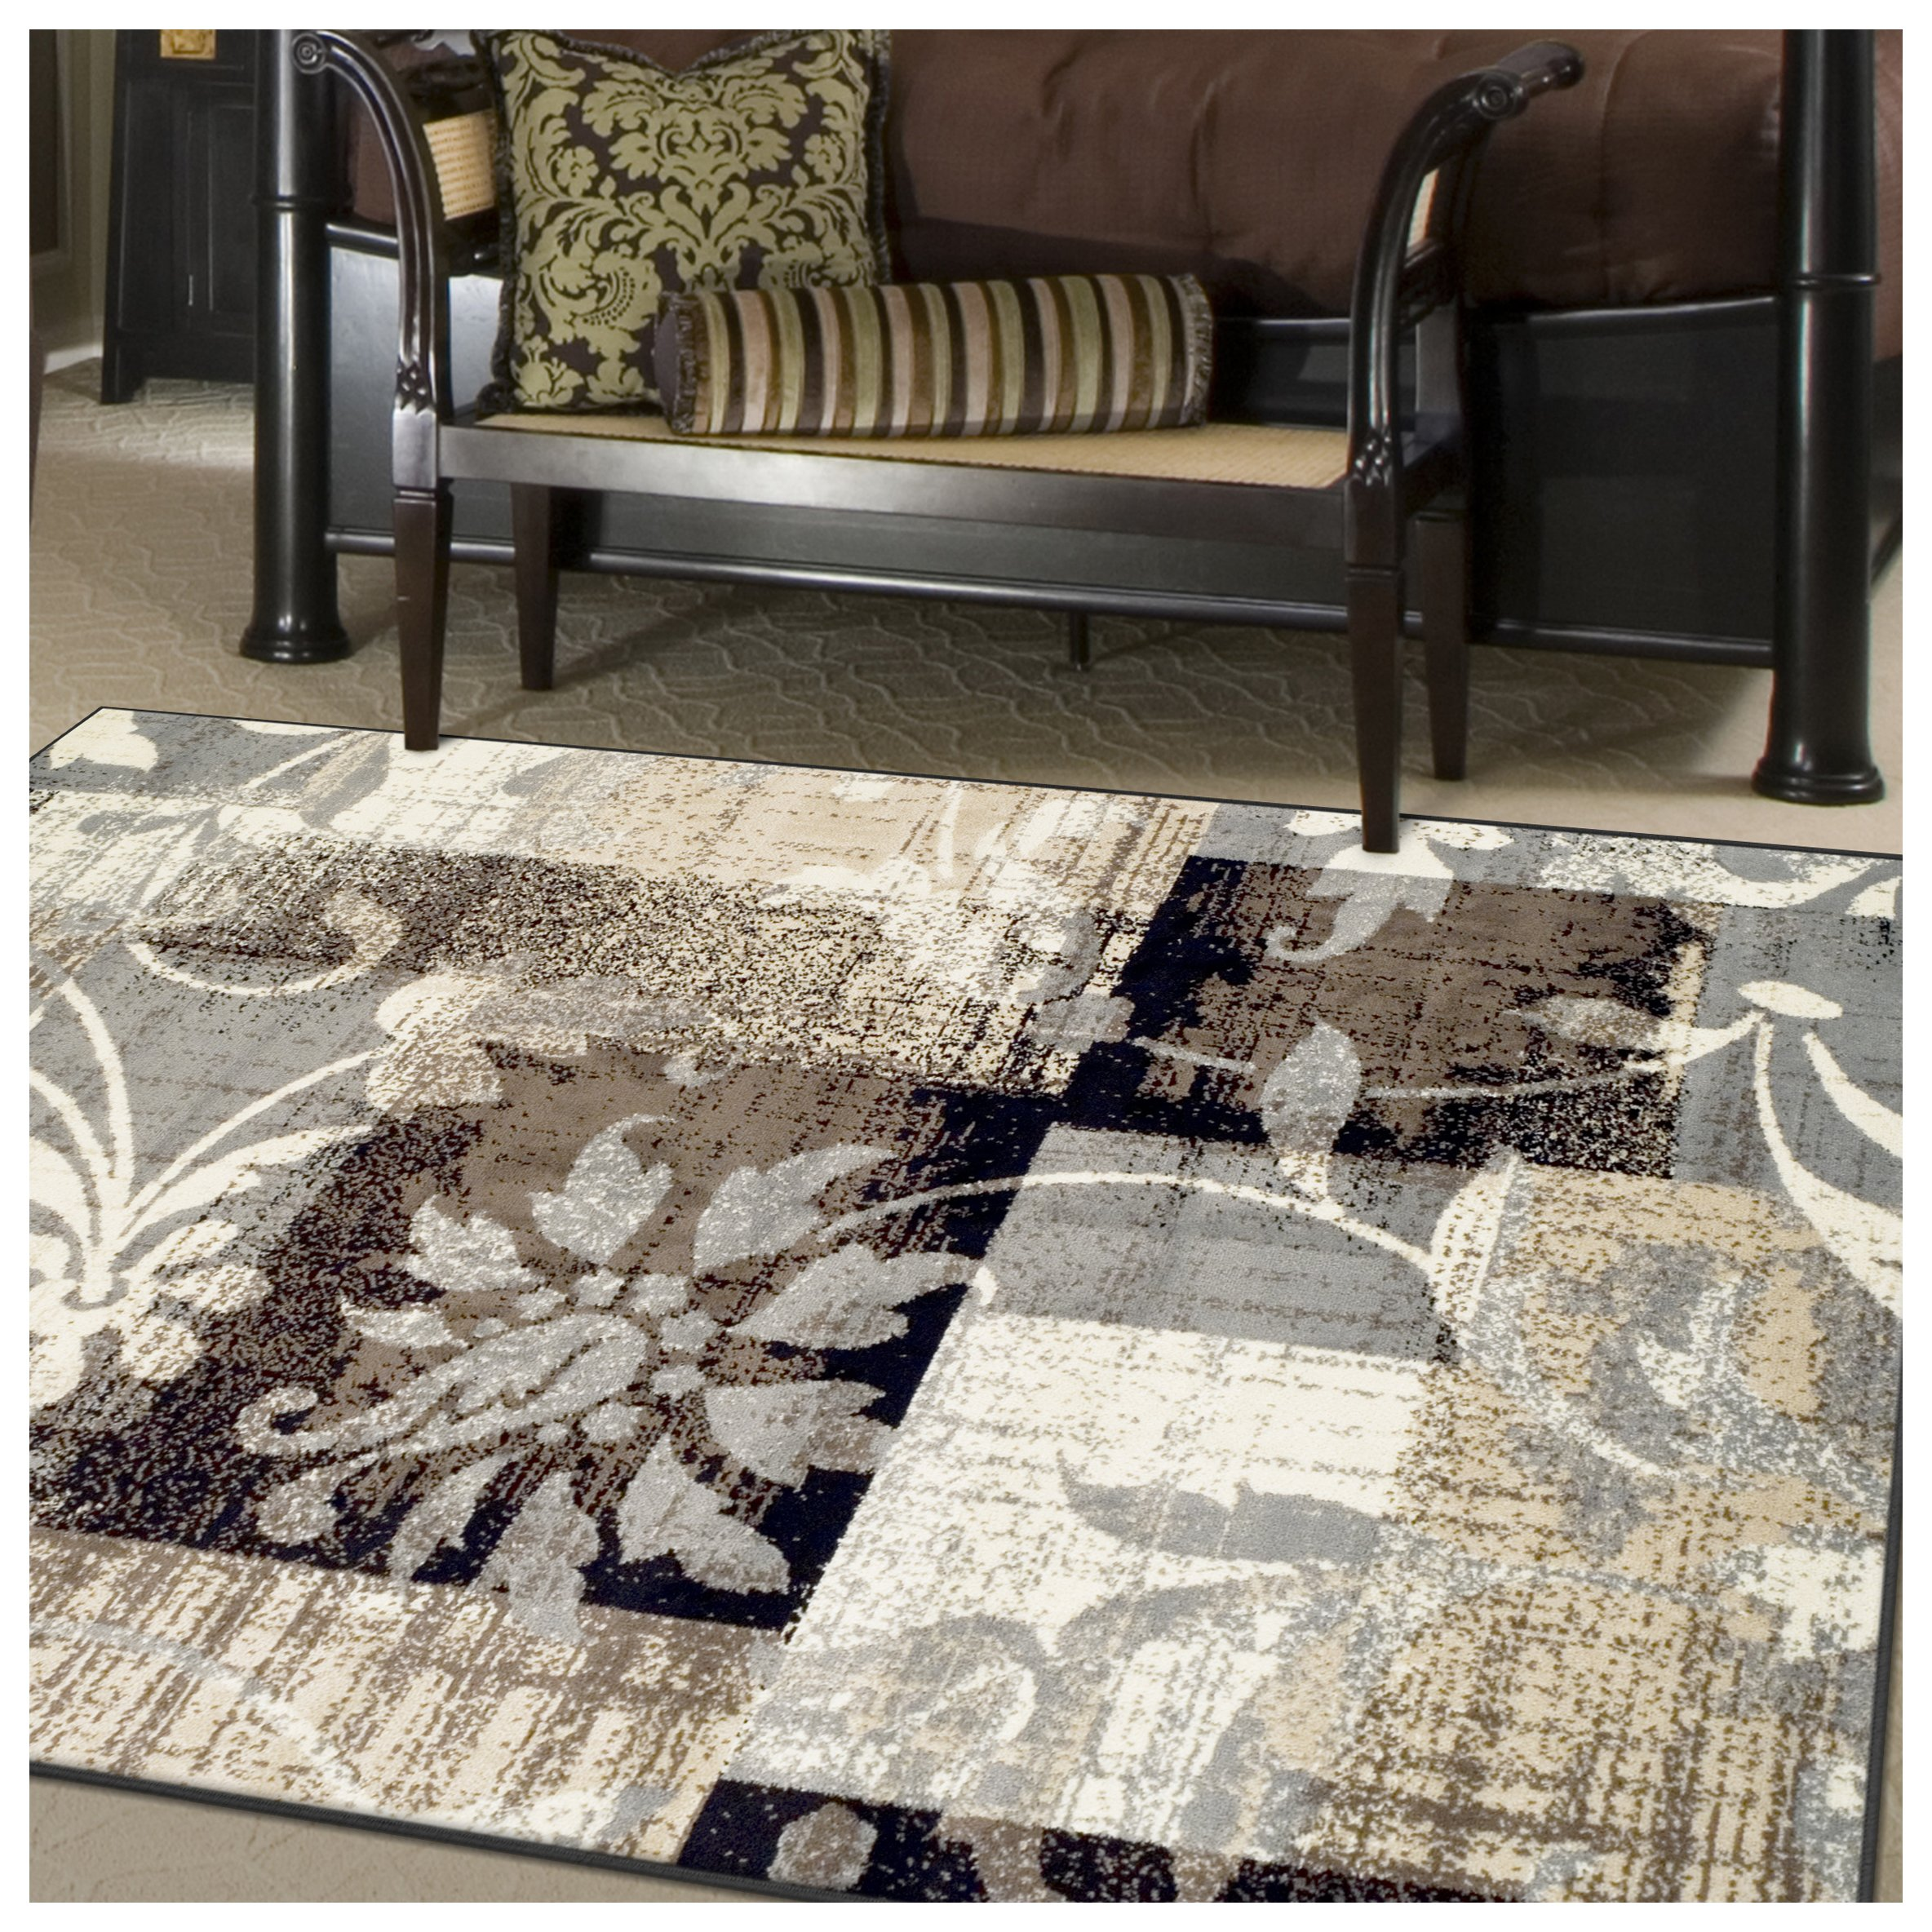 Superior Designer Pastiche Area Rug, Distressed Geometric Floral Patchwork Pattern, 8' x 10', Chocolate by Superior